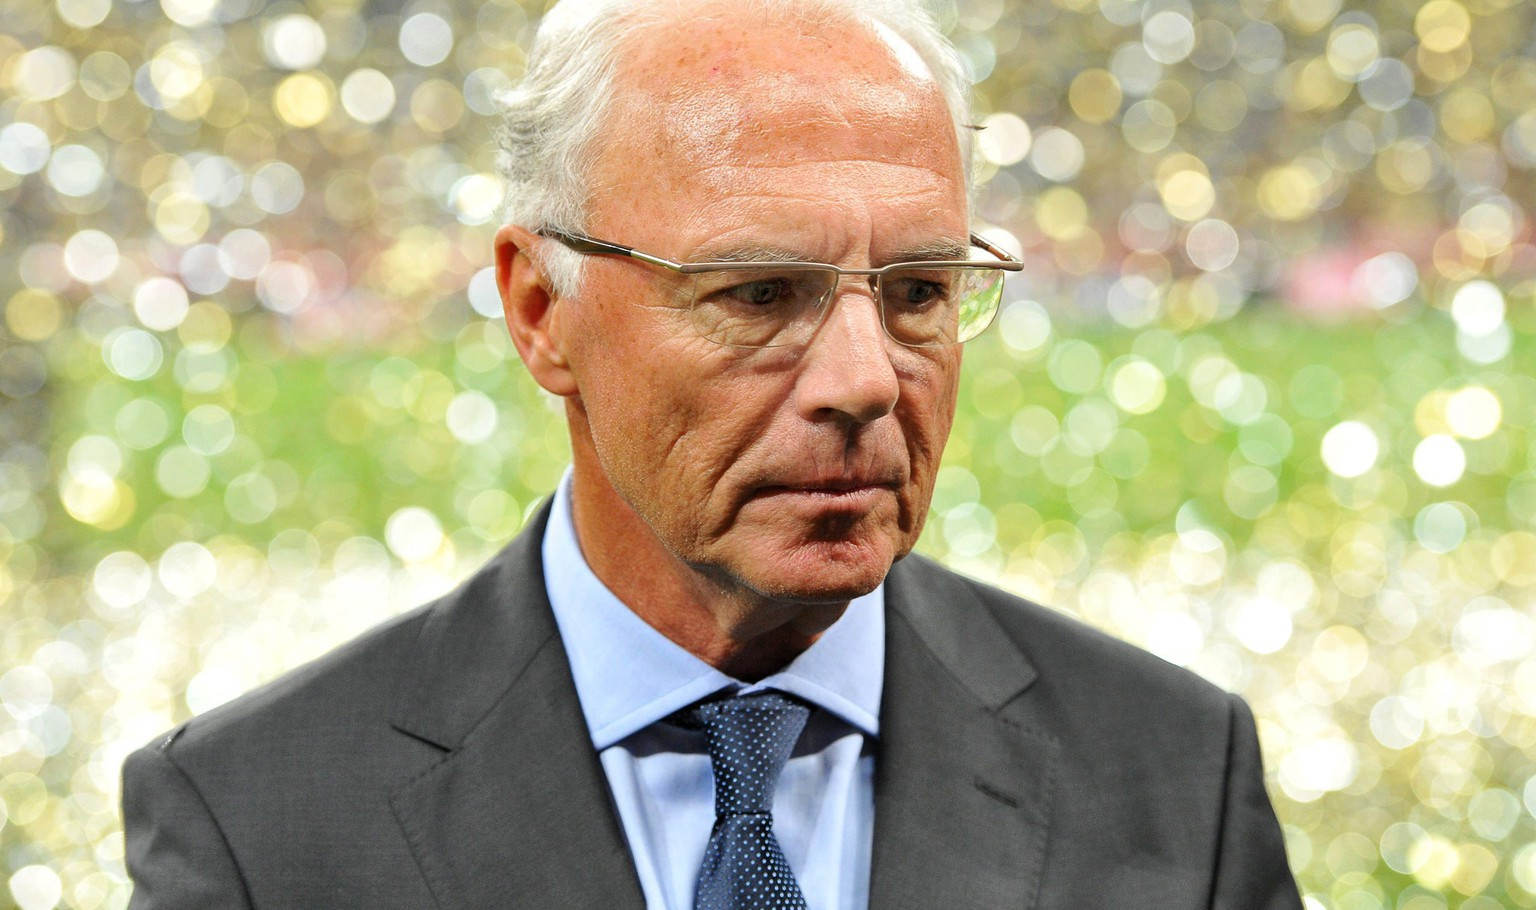 epa05166189 (FILE) A file picture dated 13 August 2010 of German soccer legend Franz Beckenbauer leaving after a friendly soccer match between Bayern Munich and Real Madrid in Munich, Germany. Franz Beckenbauer was fined 7,000 Swiss francs (about 6,300 euro) and given a warning by FIFA's ethics committee. Beckenbauer, a former member of football world governing body's executive committee, failed to cooperate with an ethics committee investigation into bids for the 2018 and 2022 World Cups, the adjudicatory chamber of the ethics committee said on 17 February 2016.  EPA/MARC MUELLER *** Local Caption *** 52366557